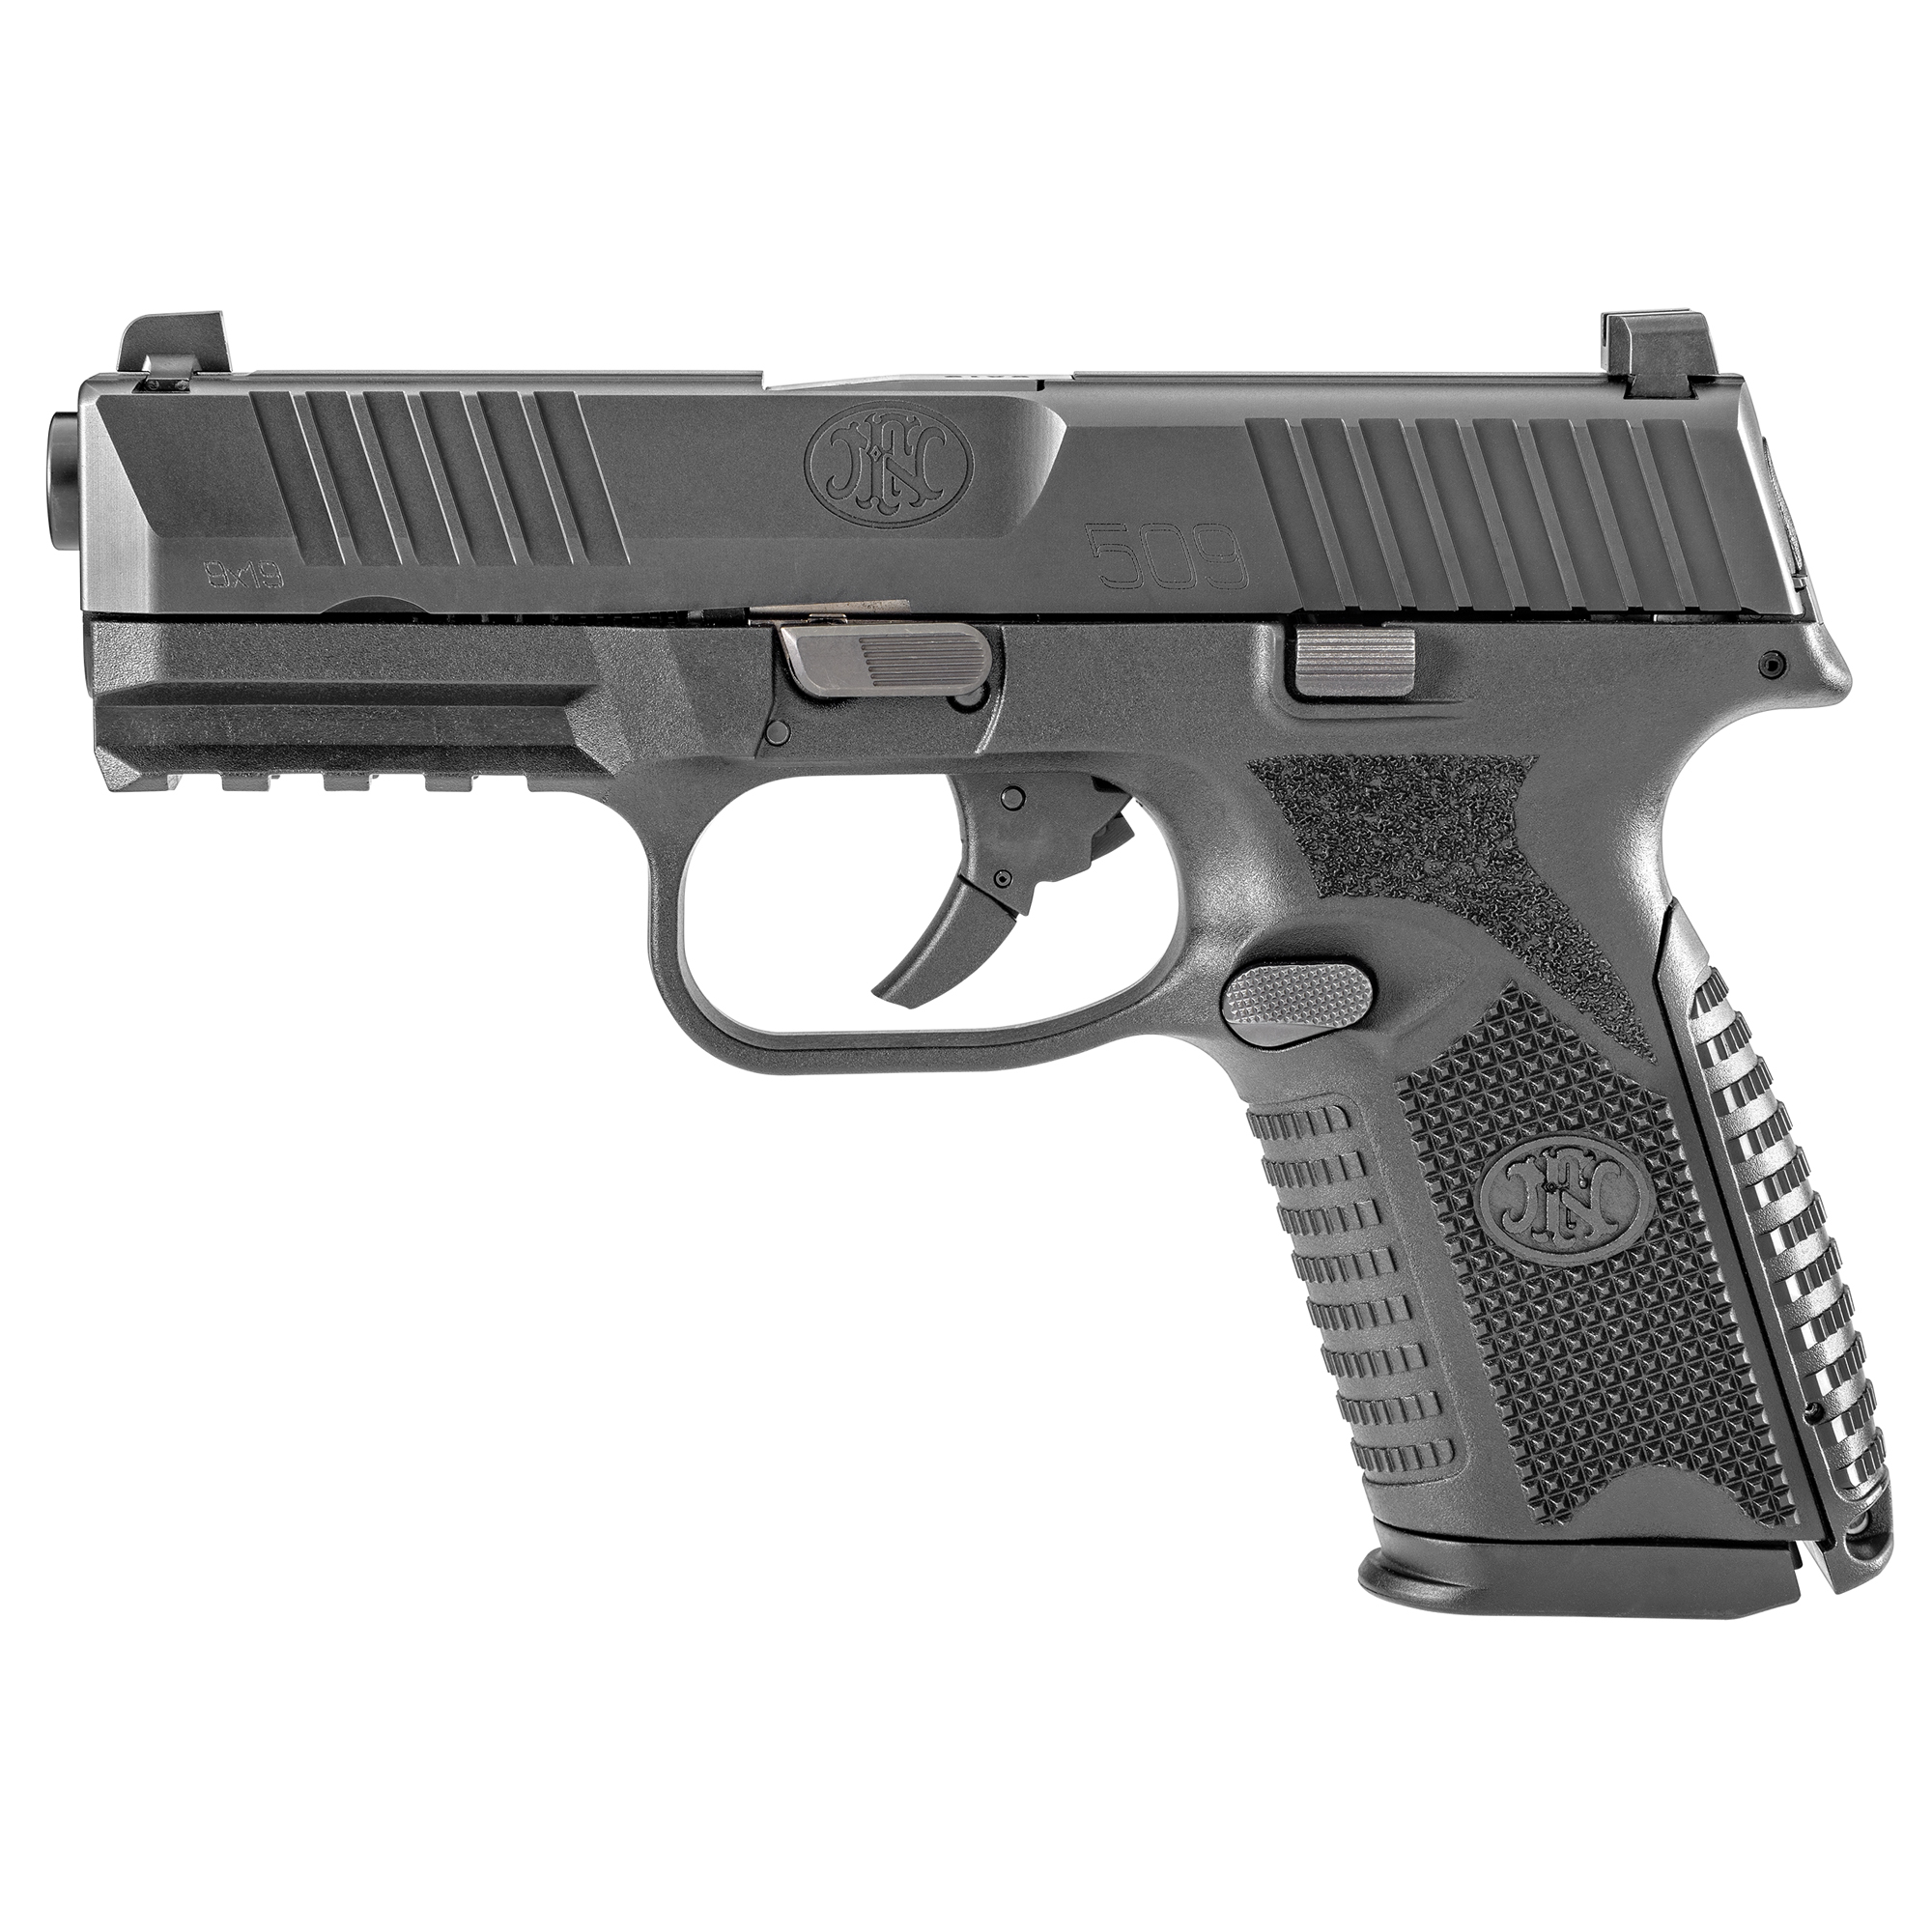 """The FN 509(R) is built on the proven architecture of the FNS(TM) Compact"""" FN made changes internally and externally to meet the rigorous performance standards of the MHS requirements and further developed the platform into the FN 509(R) with the help from industry experts. Over the course of development"""" the platform has been tested extensively for reliability"""" ammunition compatibility and durability - totaling more than one million rounds"""